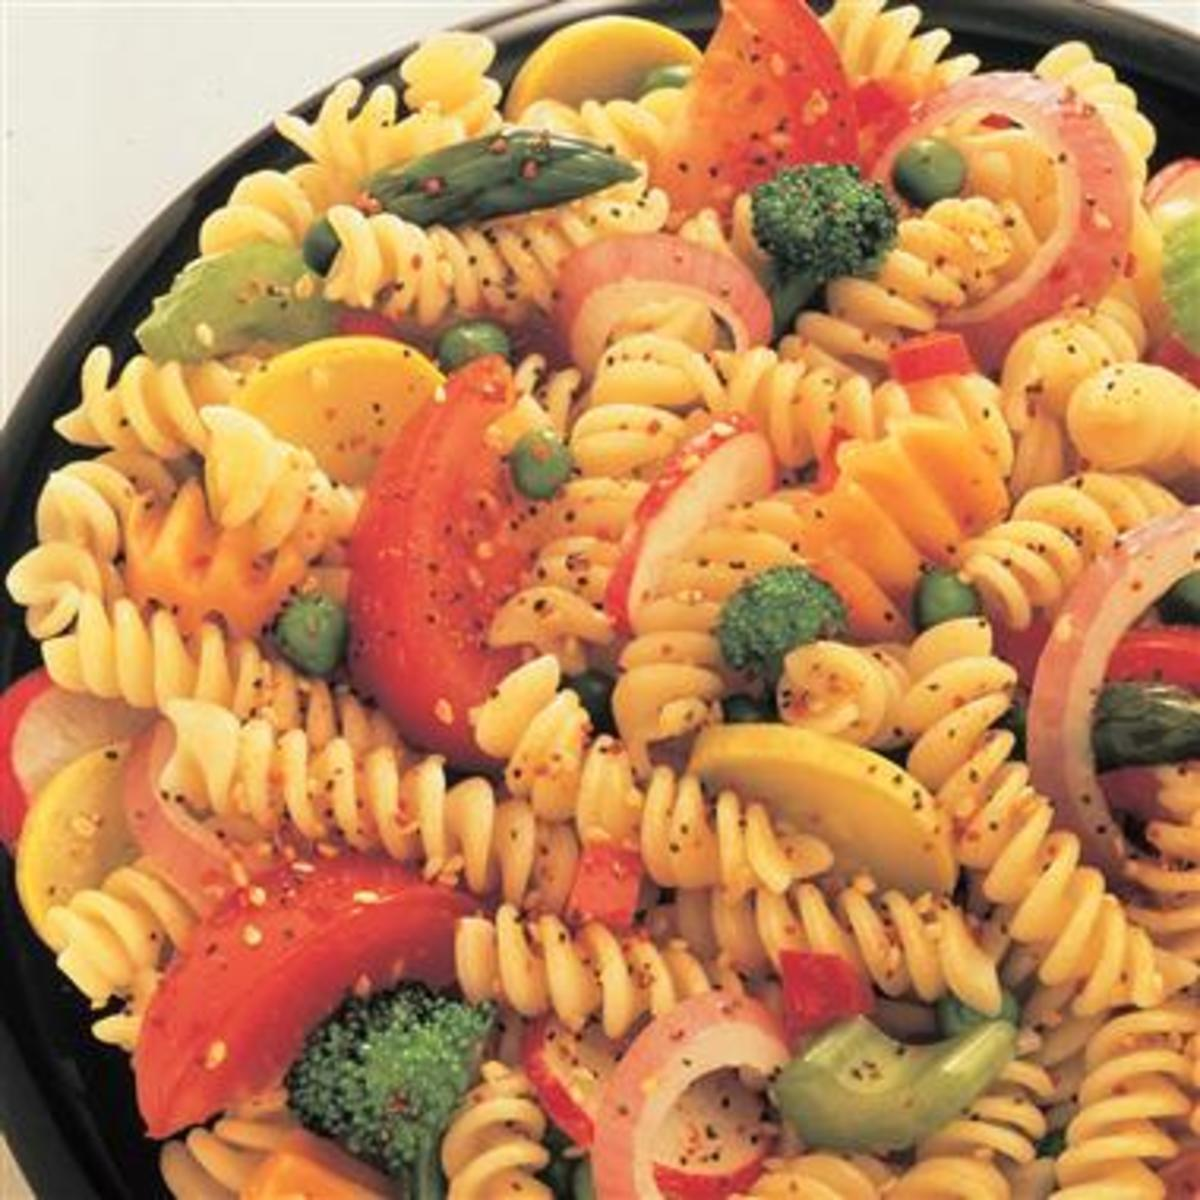 refined carbohydrate : pasta